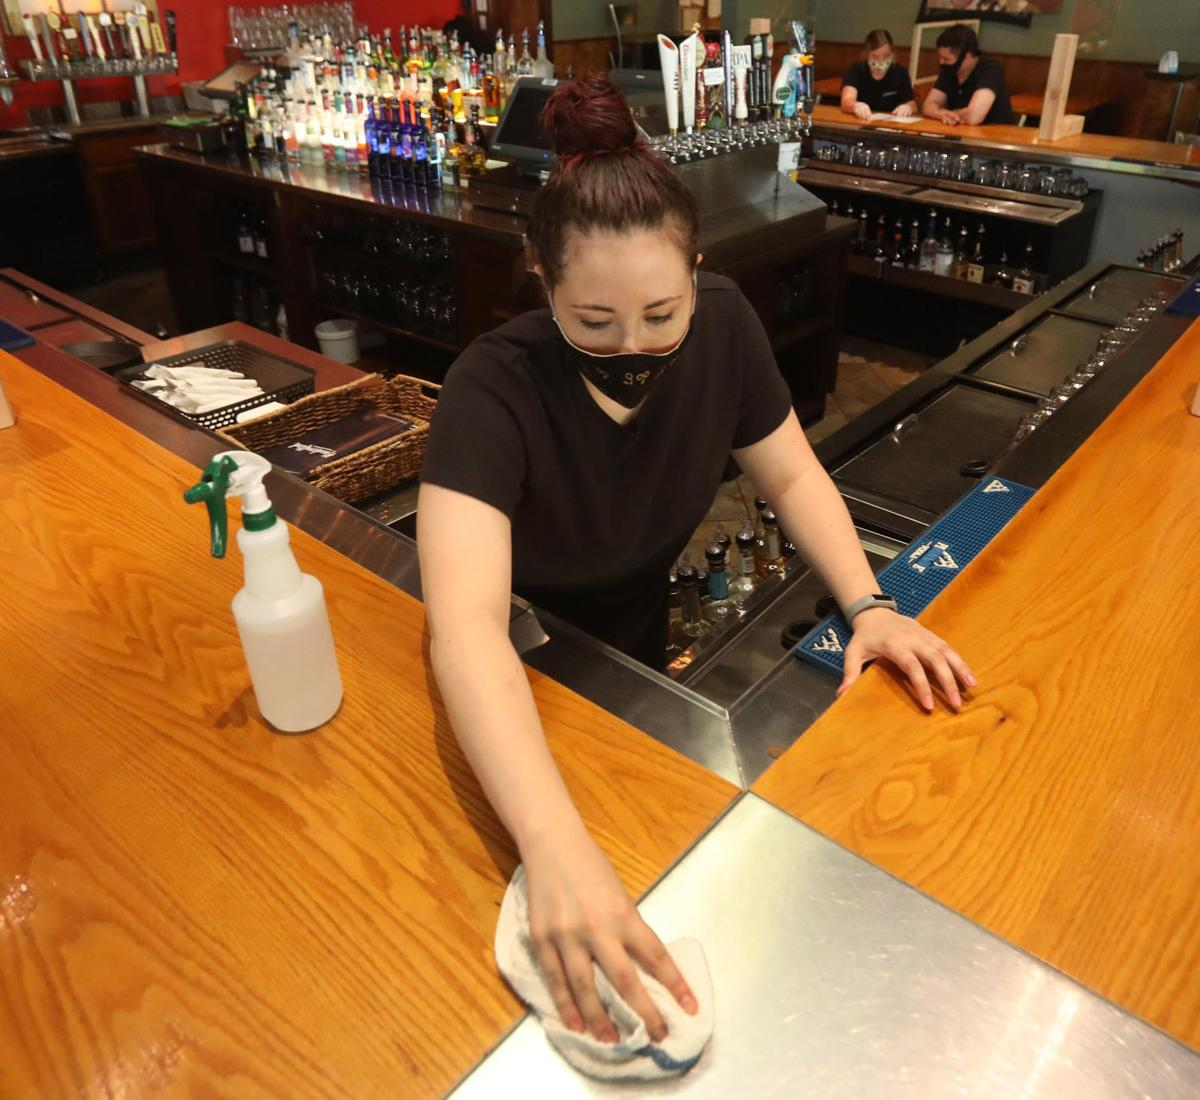 Taking Measures to Keep Customers and Staff Safe at Rodano's